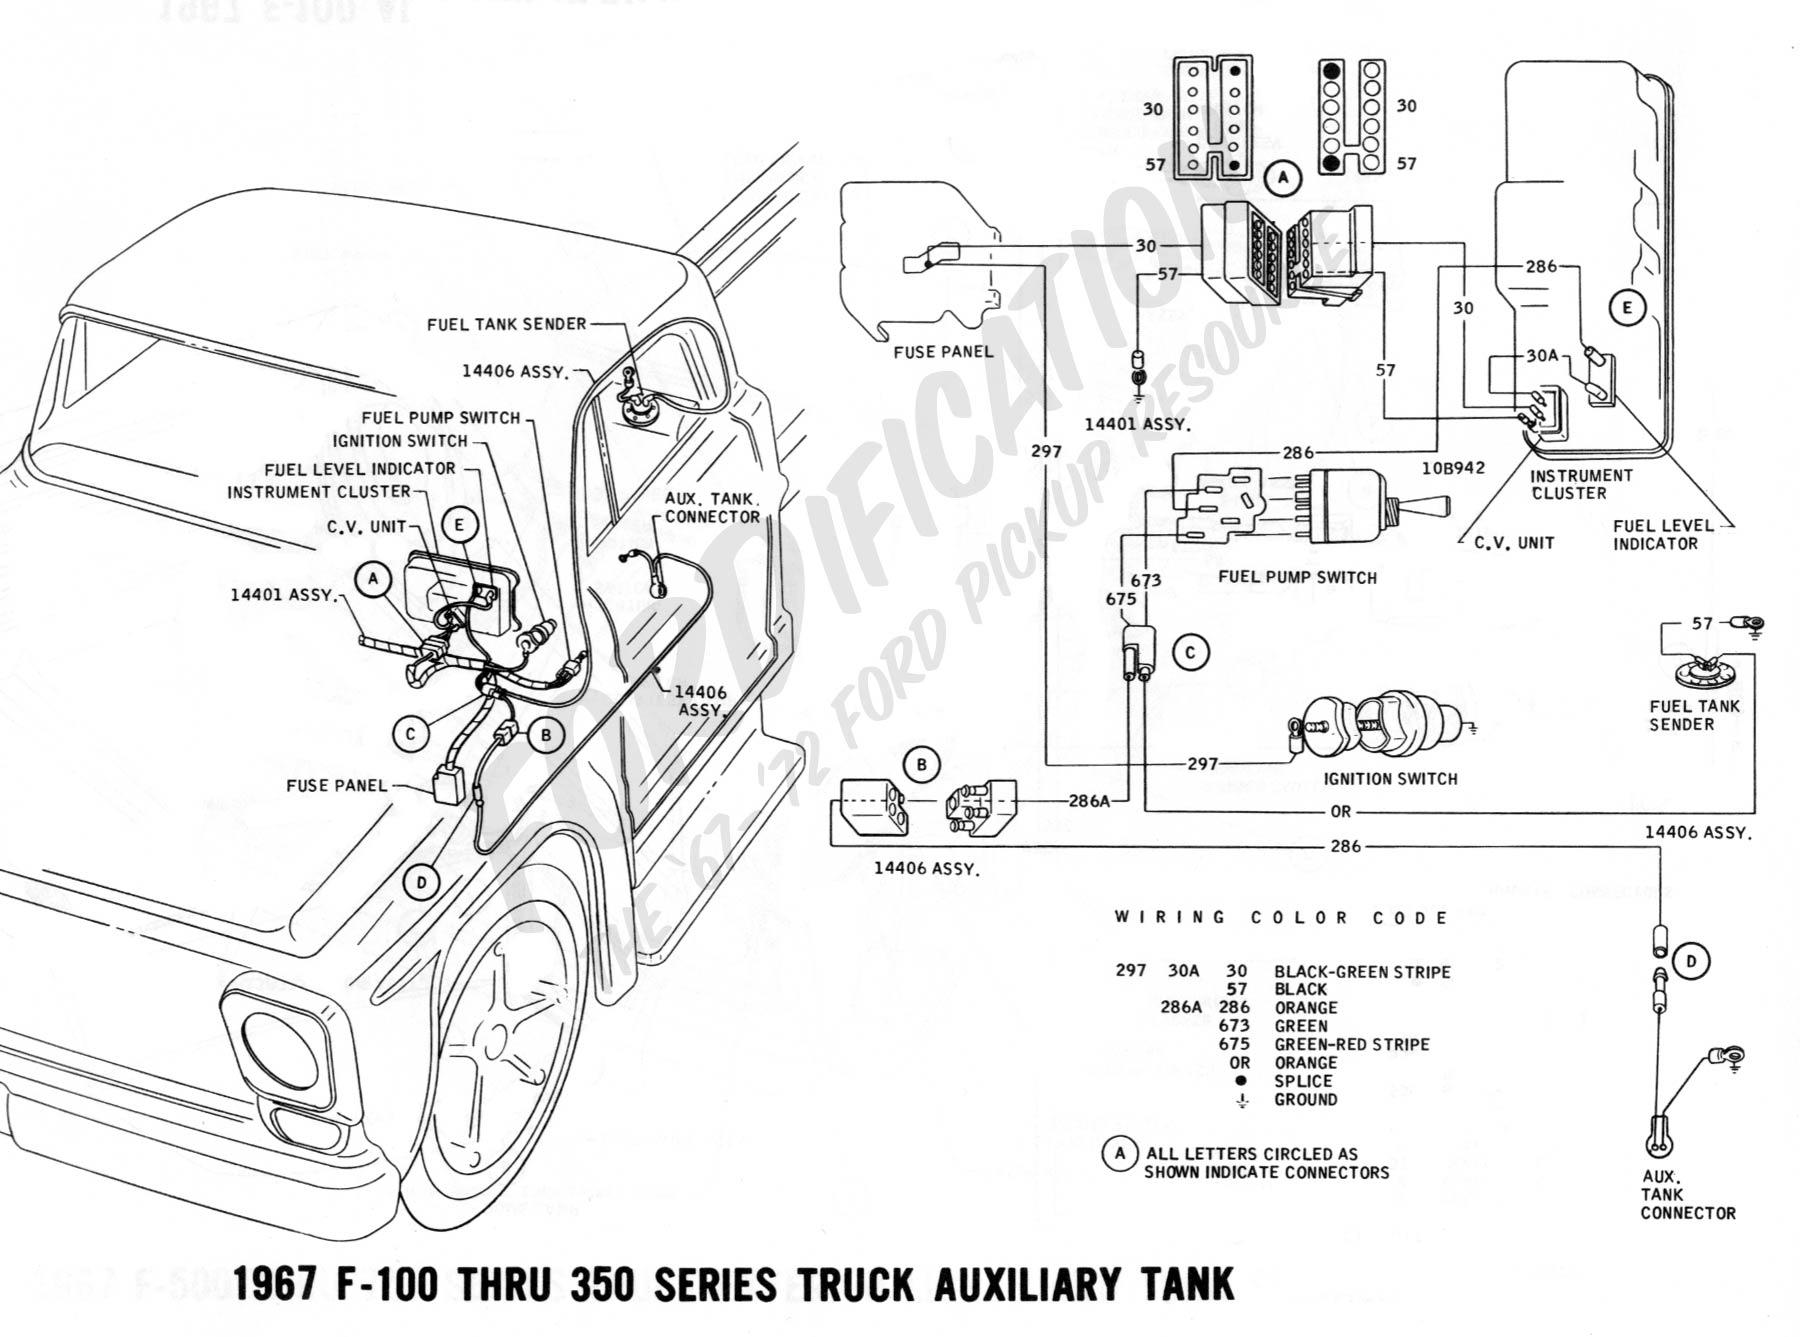 wiring 1967auxtank ford truck technical drawings and schematics section h wiring 1986 ford f250 fuel pump wiring diagram at alyssarenee.co